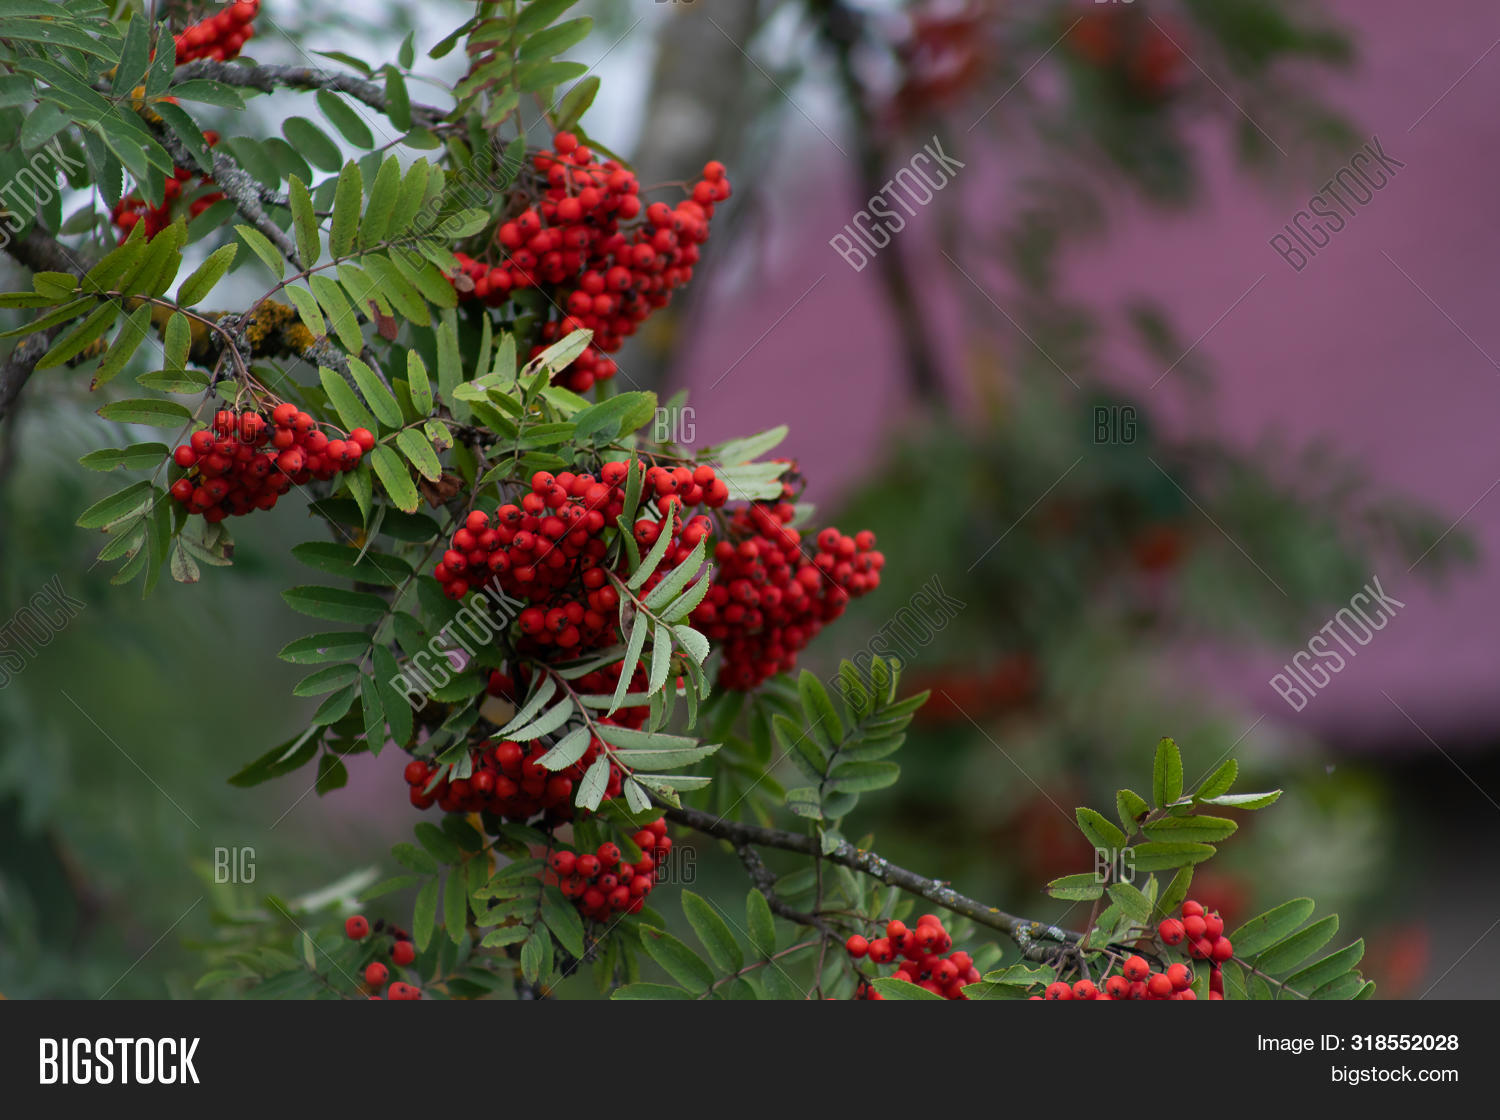 Autumn Season. Fall Harvest Concept. Autumn Rowan Berries On Branch. Amazing Benefits Of Rowan Berri